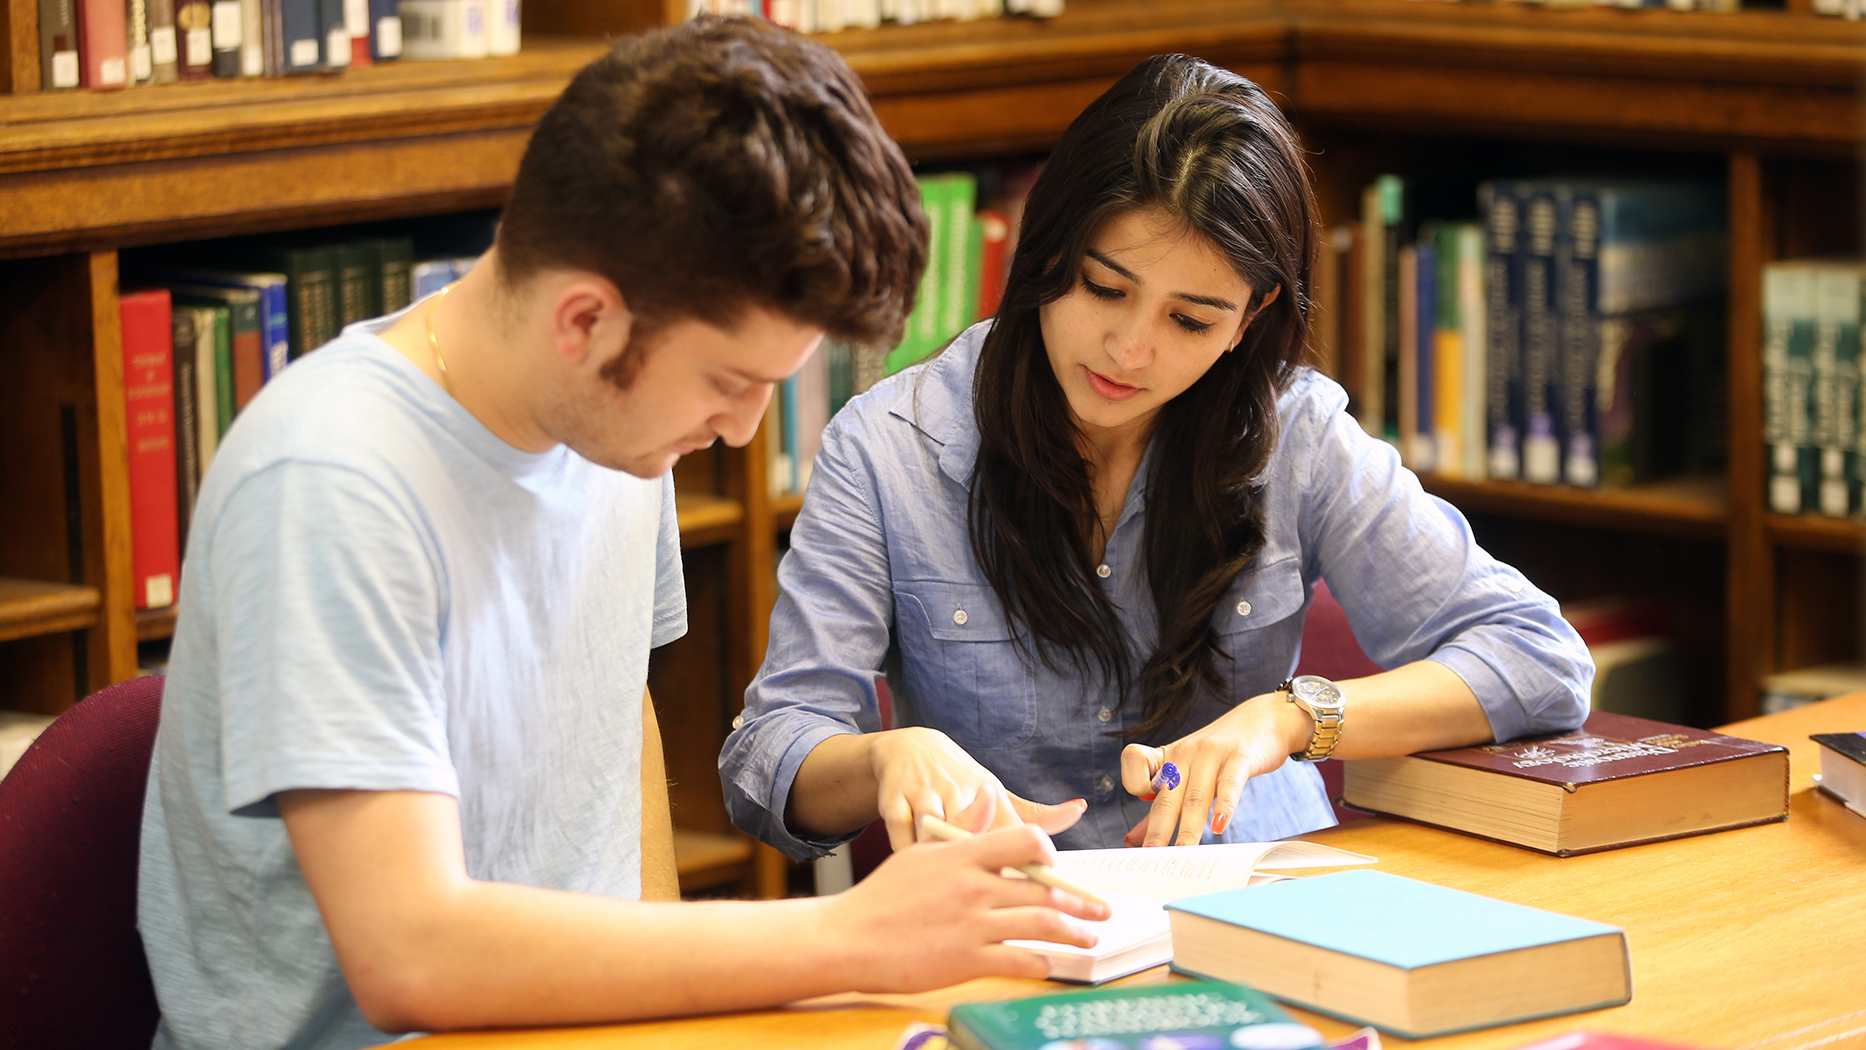 College admission essays for sale